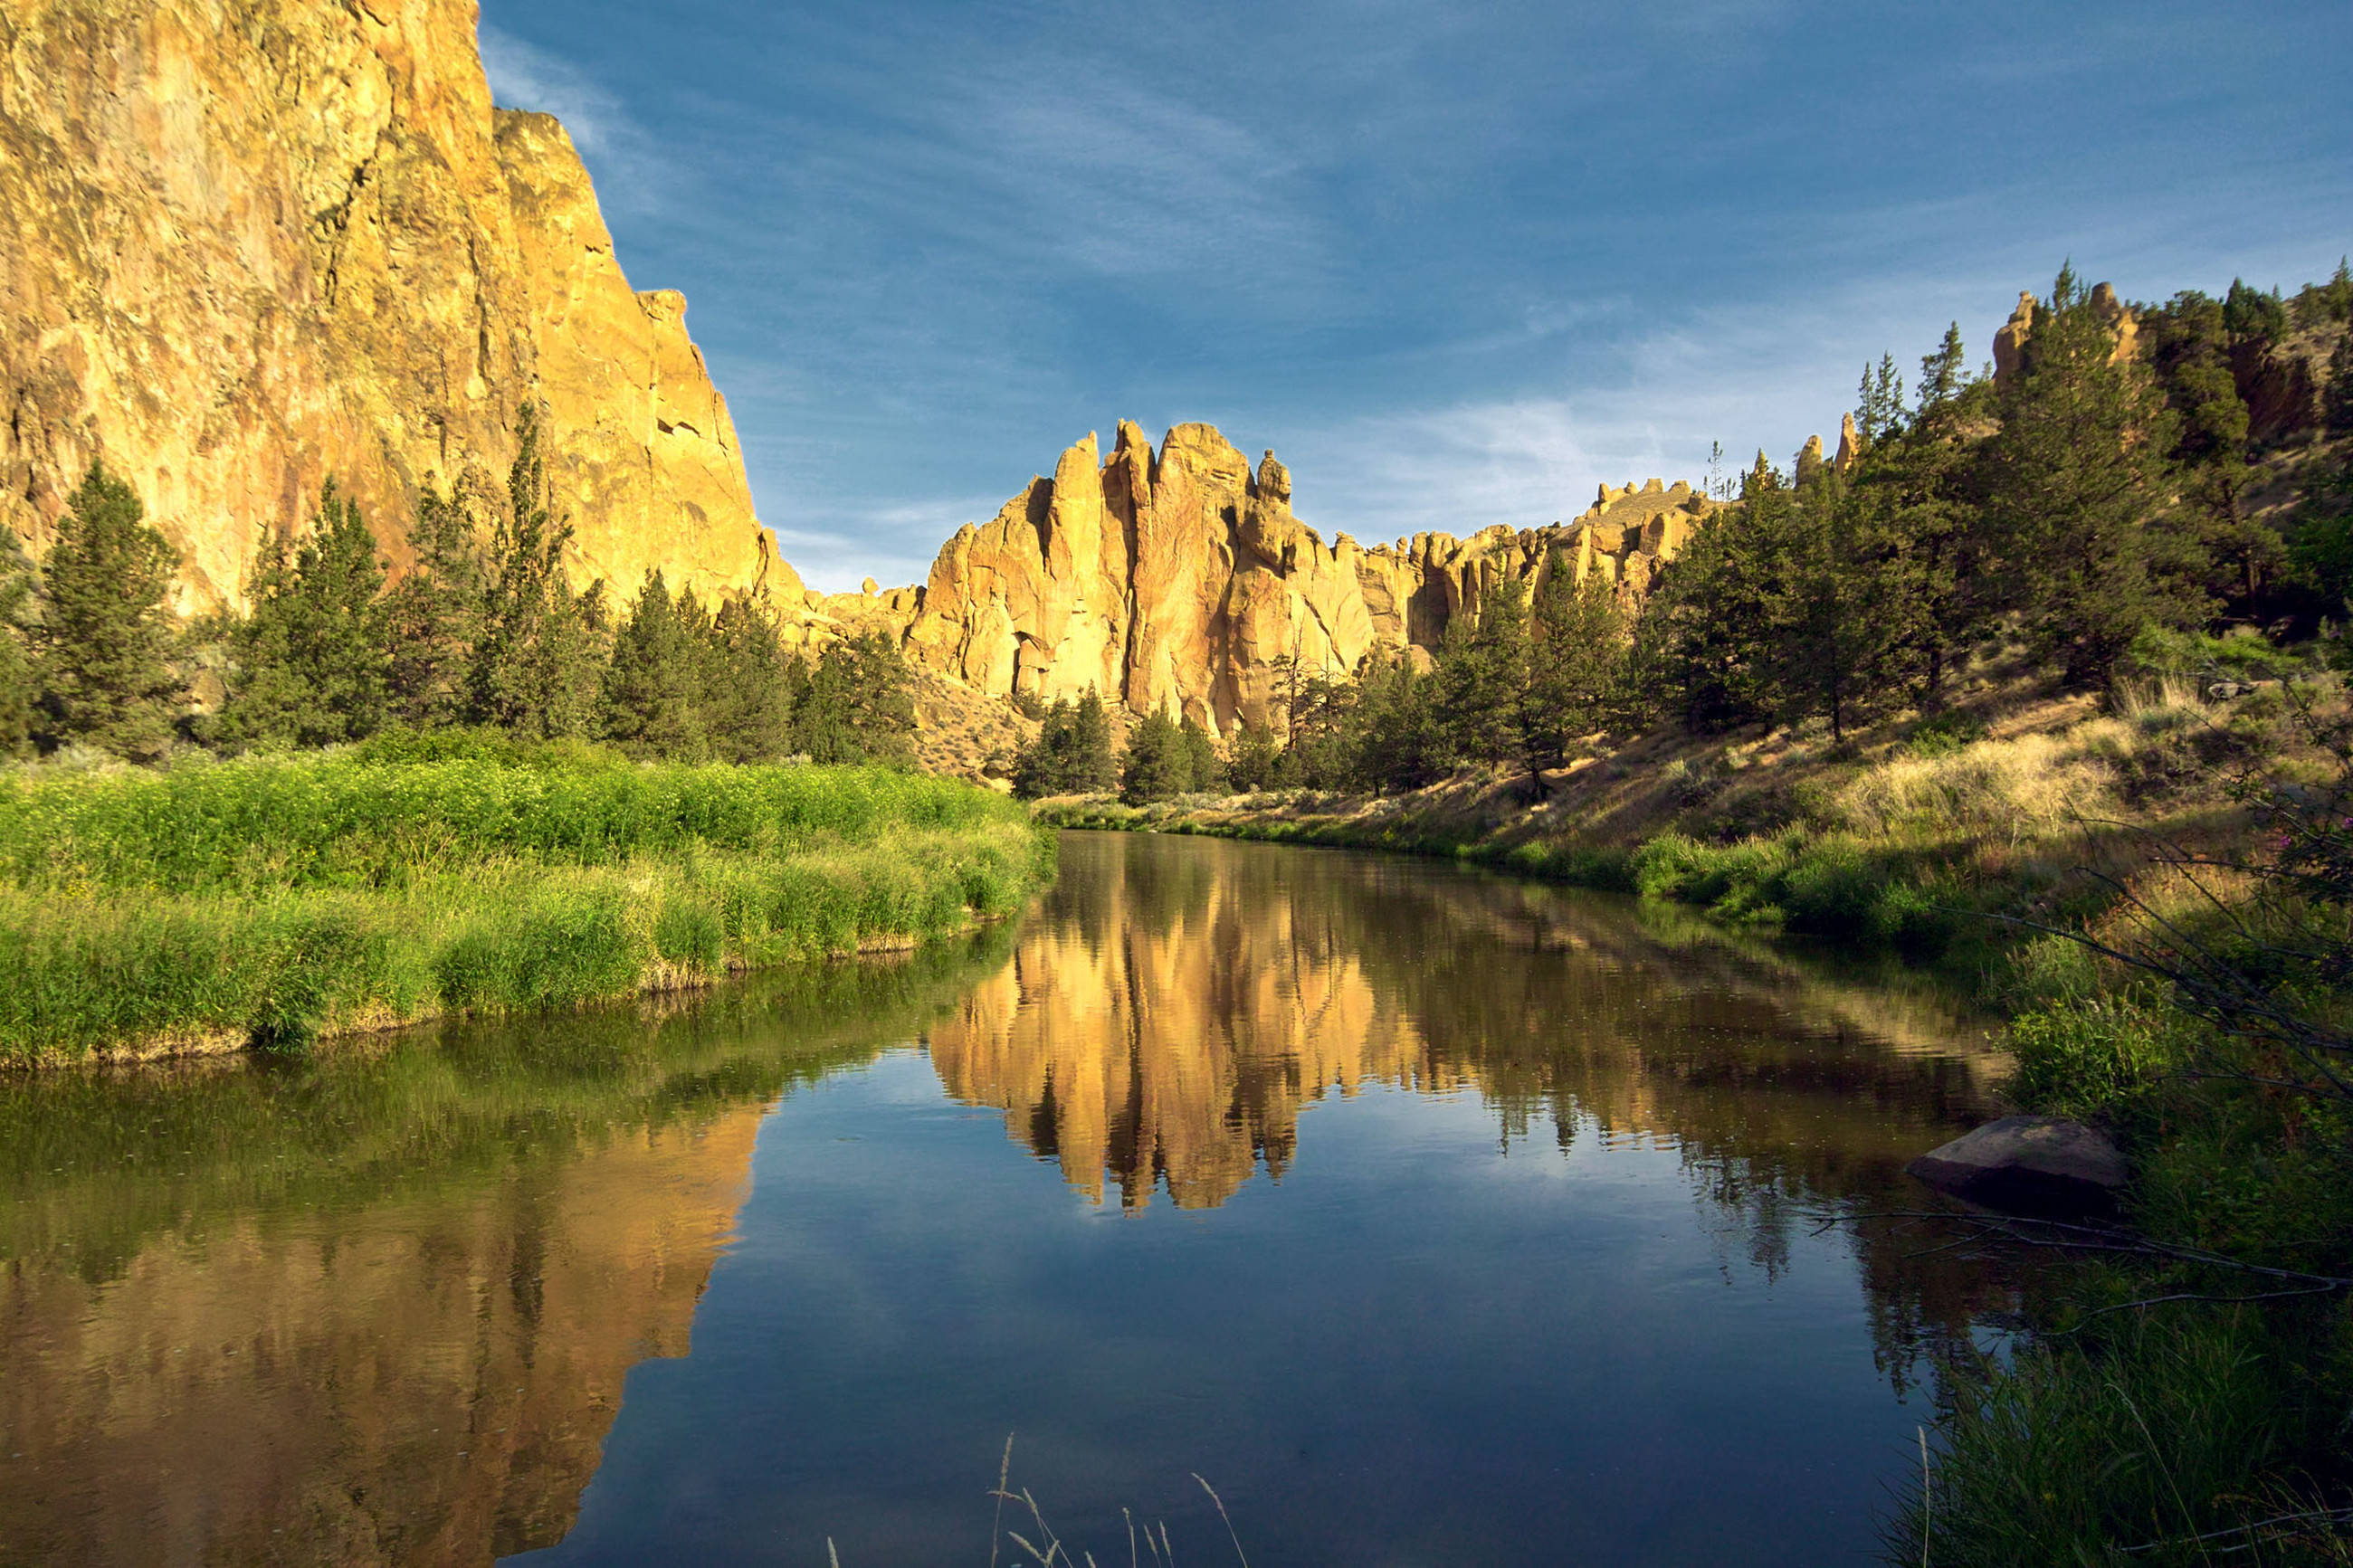 Light Reflection Smith Rock John Day Painted Hills